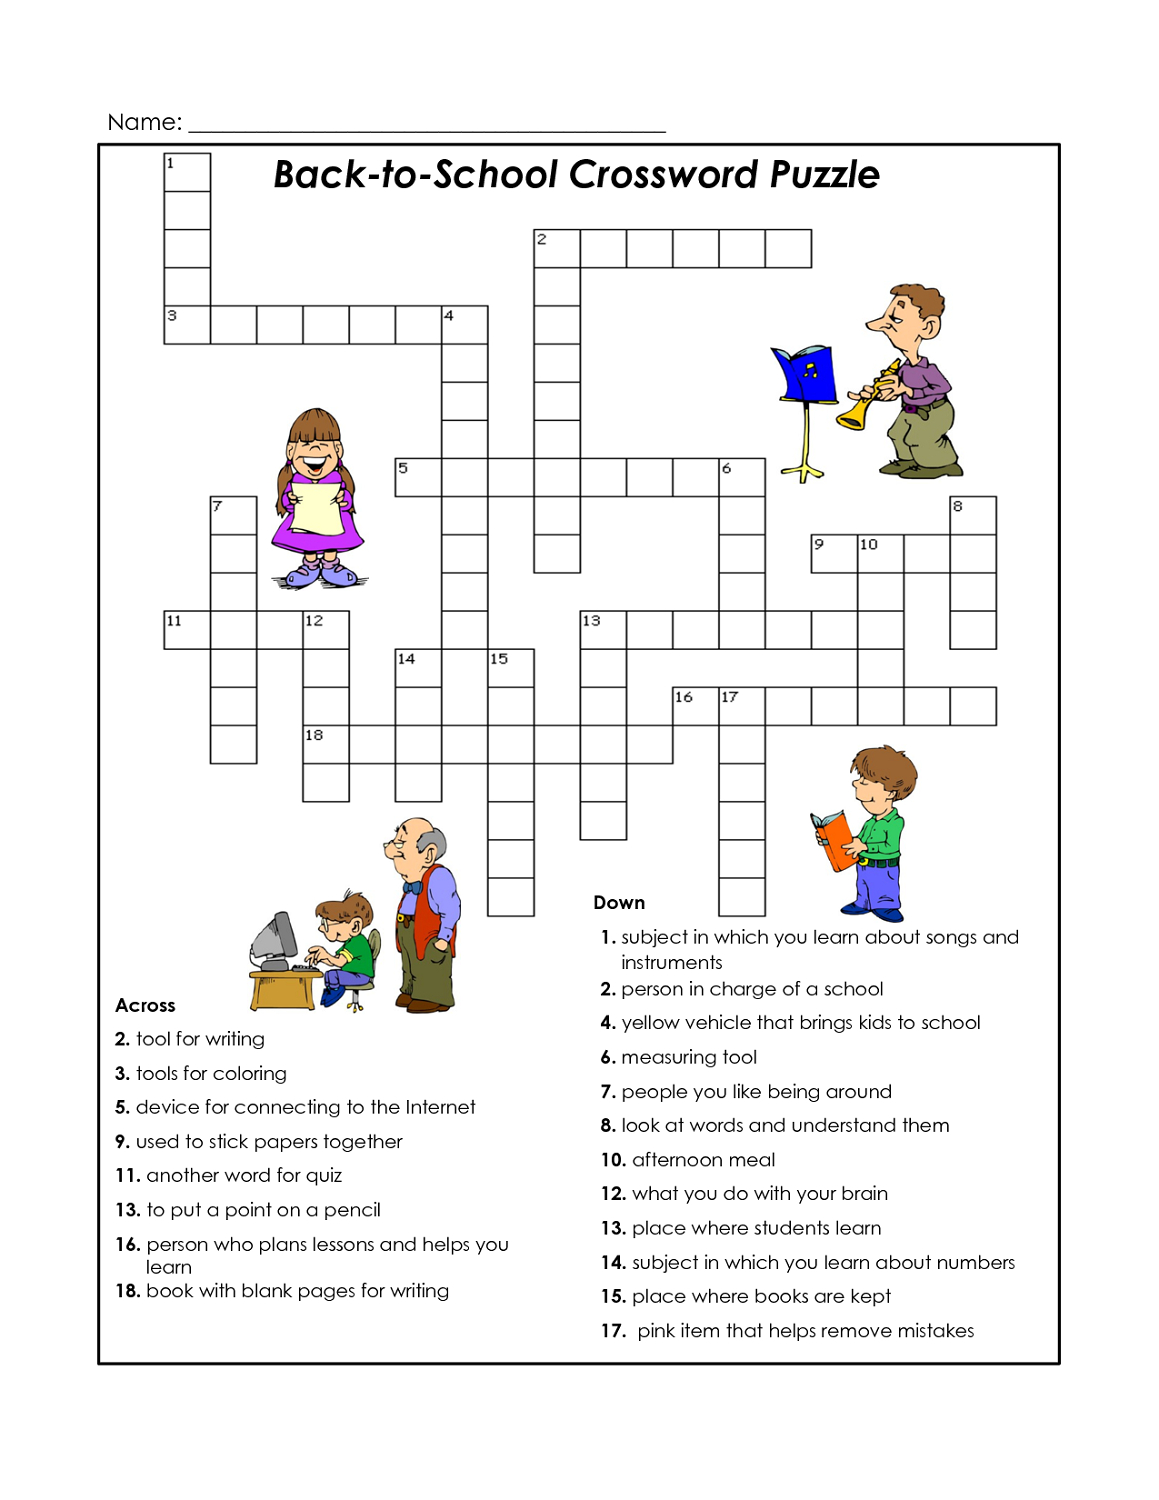 Cross Word Puzzles For Kids School | K5 Worksheets | Puzzles | Word - Printable Crossword Puzzles For Kids With Word Bank